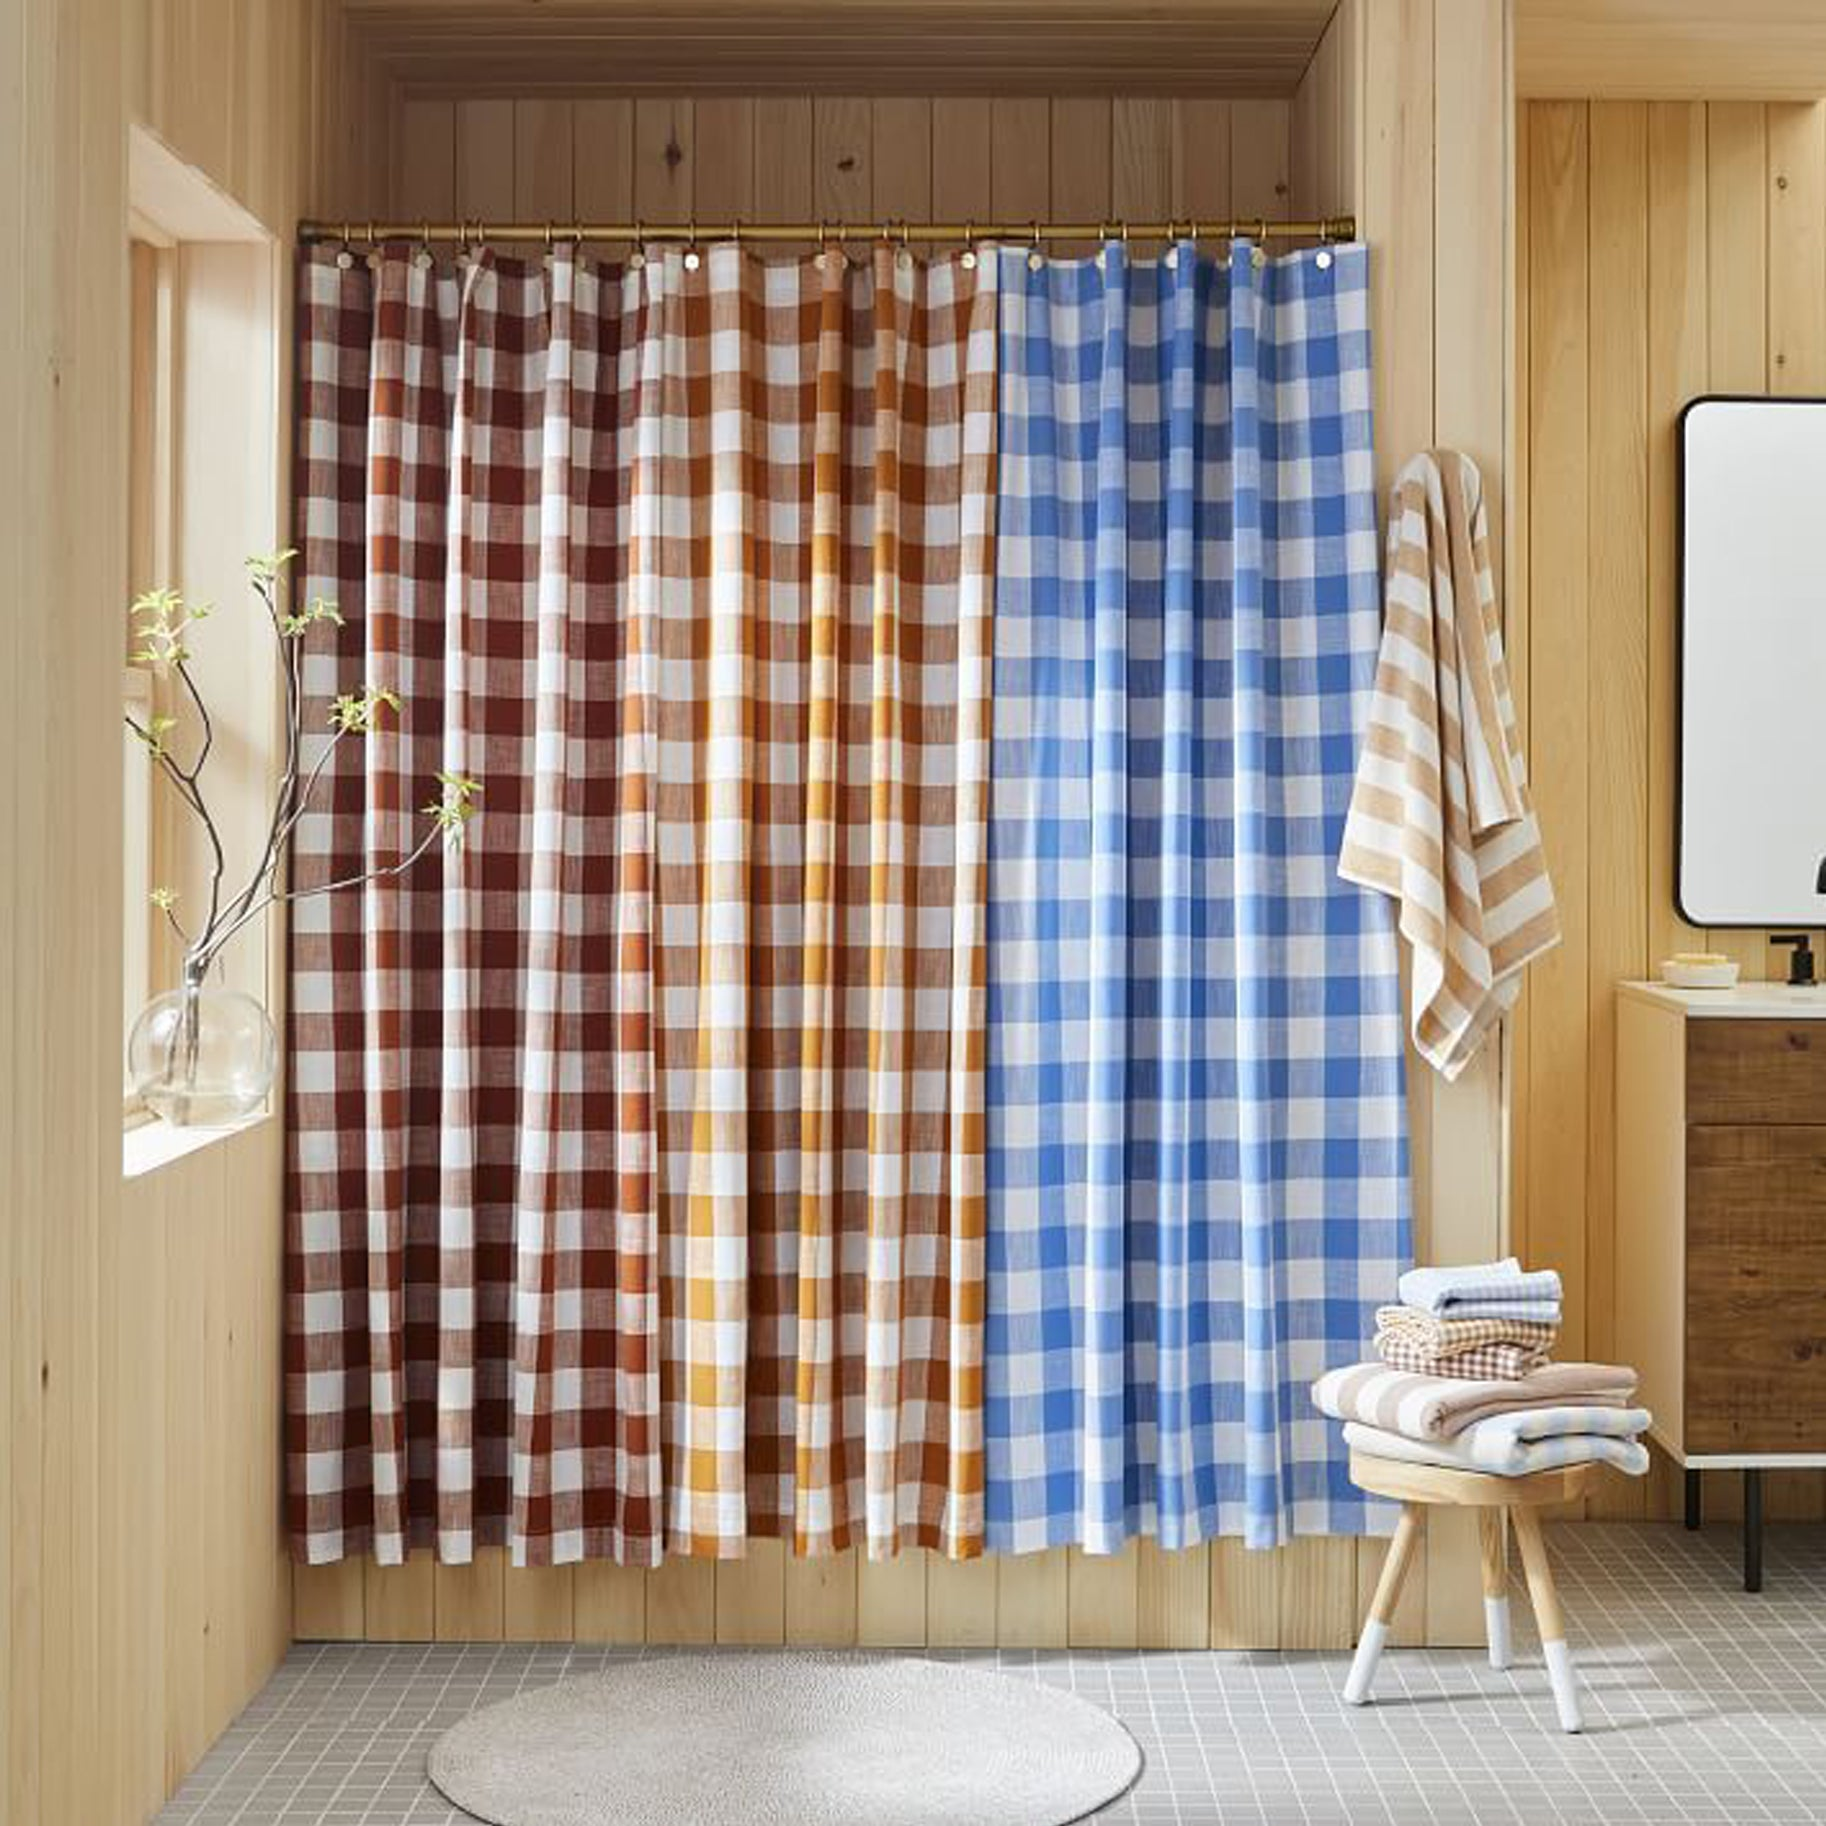 The-Best-Shower-Curtains-Option-Heather-Taylor-Home-Gingham-Curtain